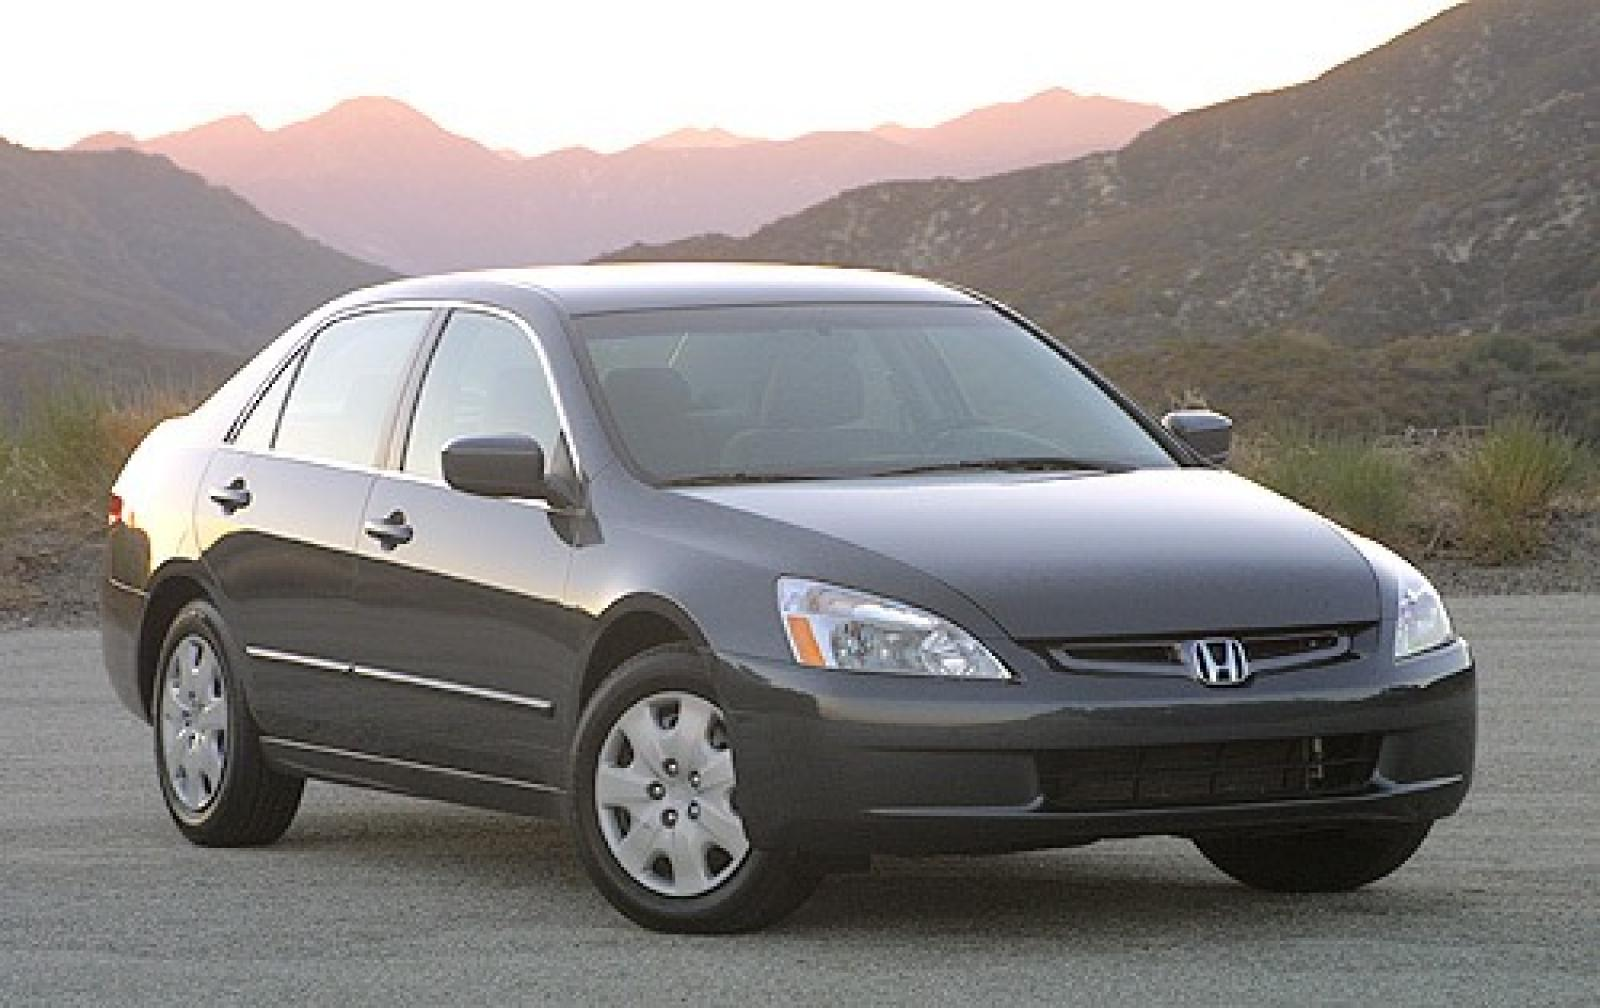 Beautiful 800 1024 1280 1600 Origin 2004 Honda Accord ...